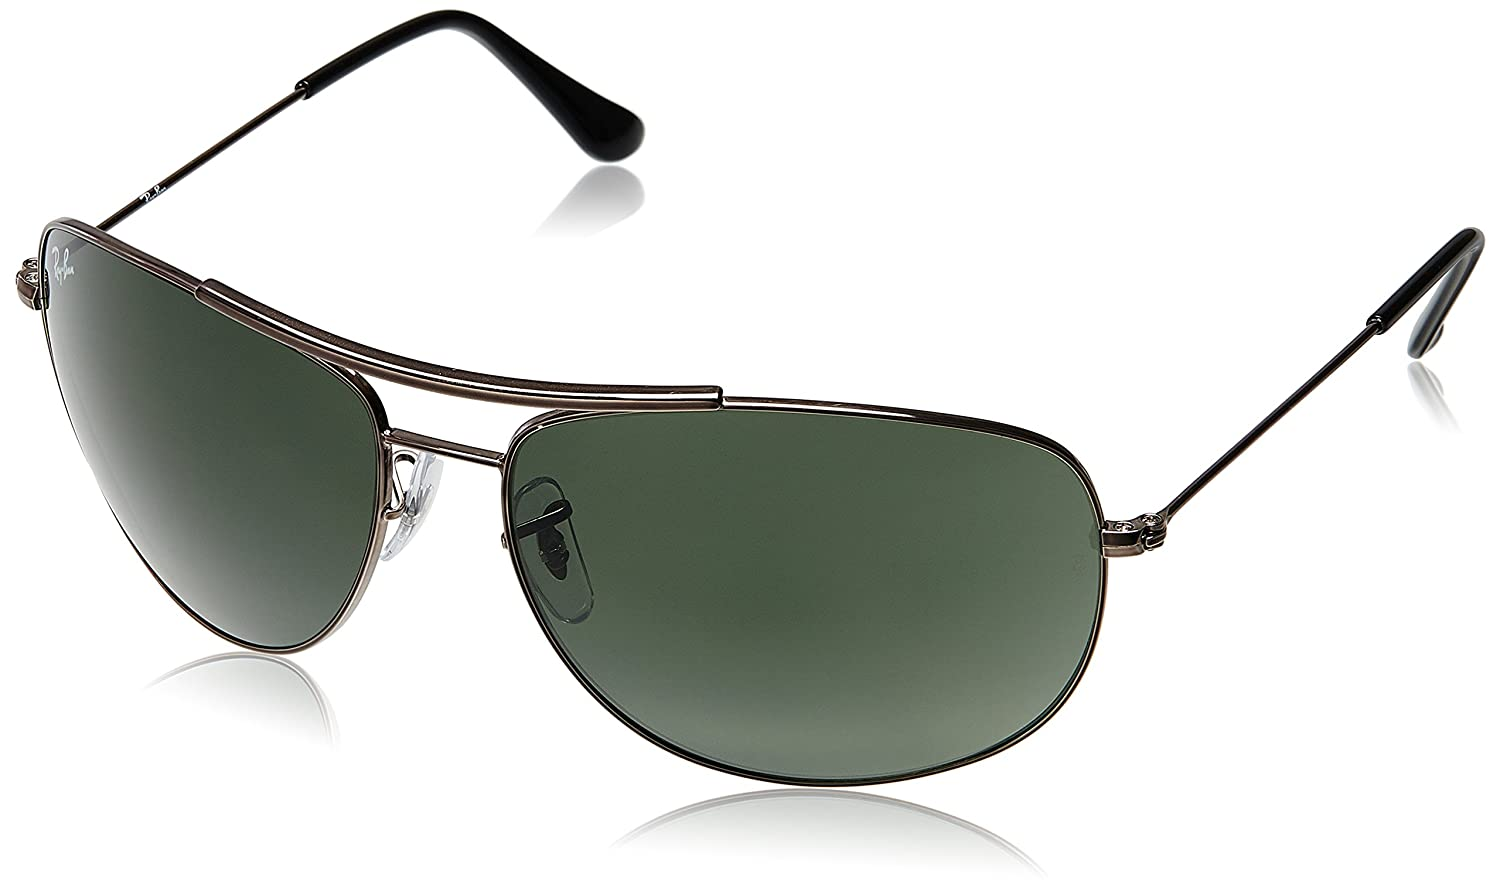 Ray ban sunglasses with price - Ray Ban Aviator Unisex Sunglasses Rb3412 004 63 63 Millimeters Green Amazon In Clothing Accessories